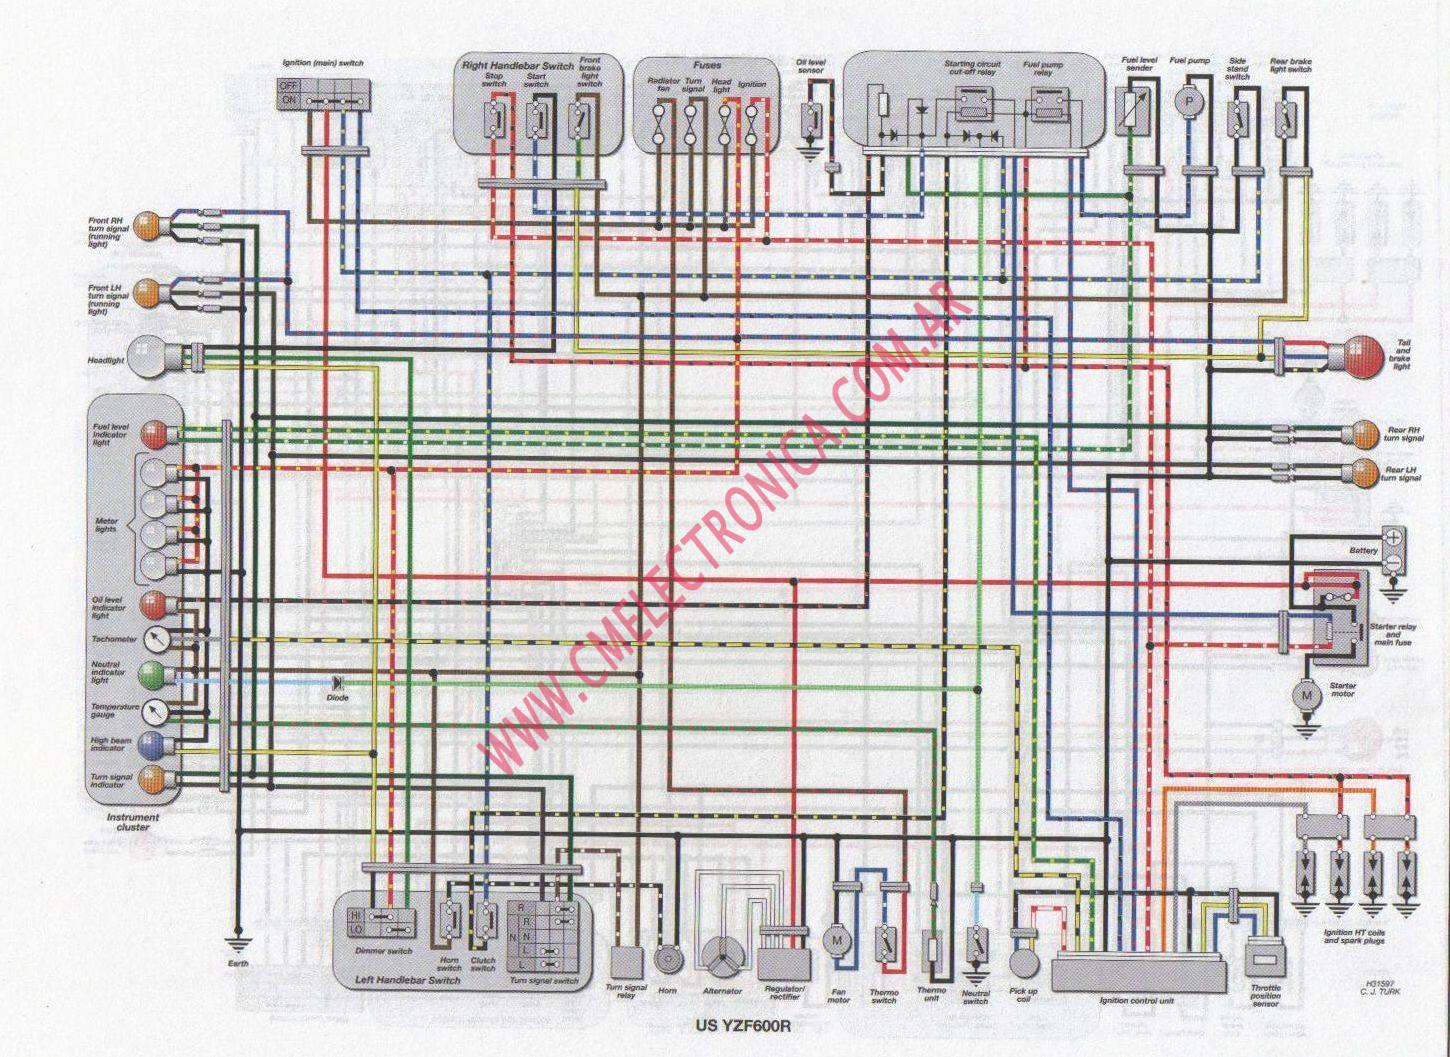 1981 Yamaha Virago 750 Wiring Diagram | New Wiring Resources ... on